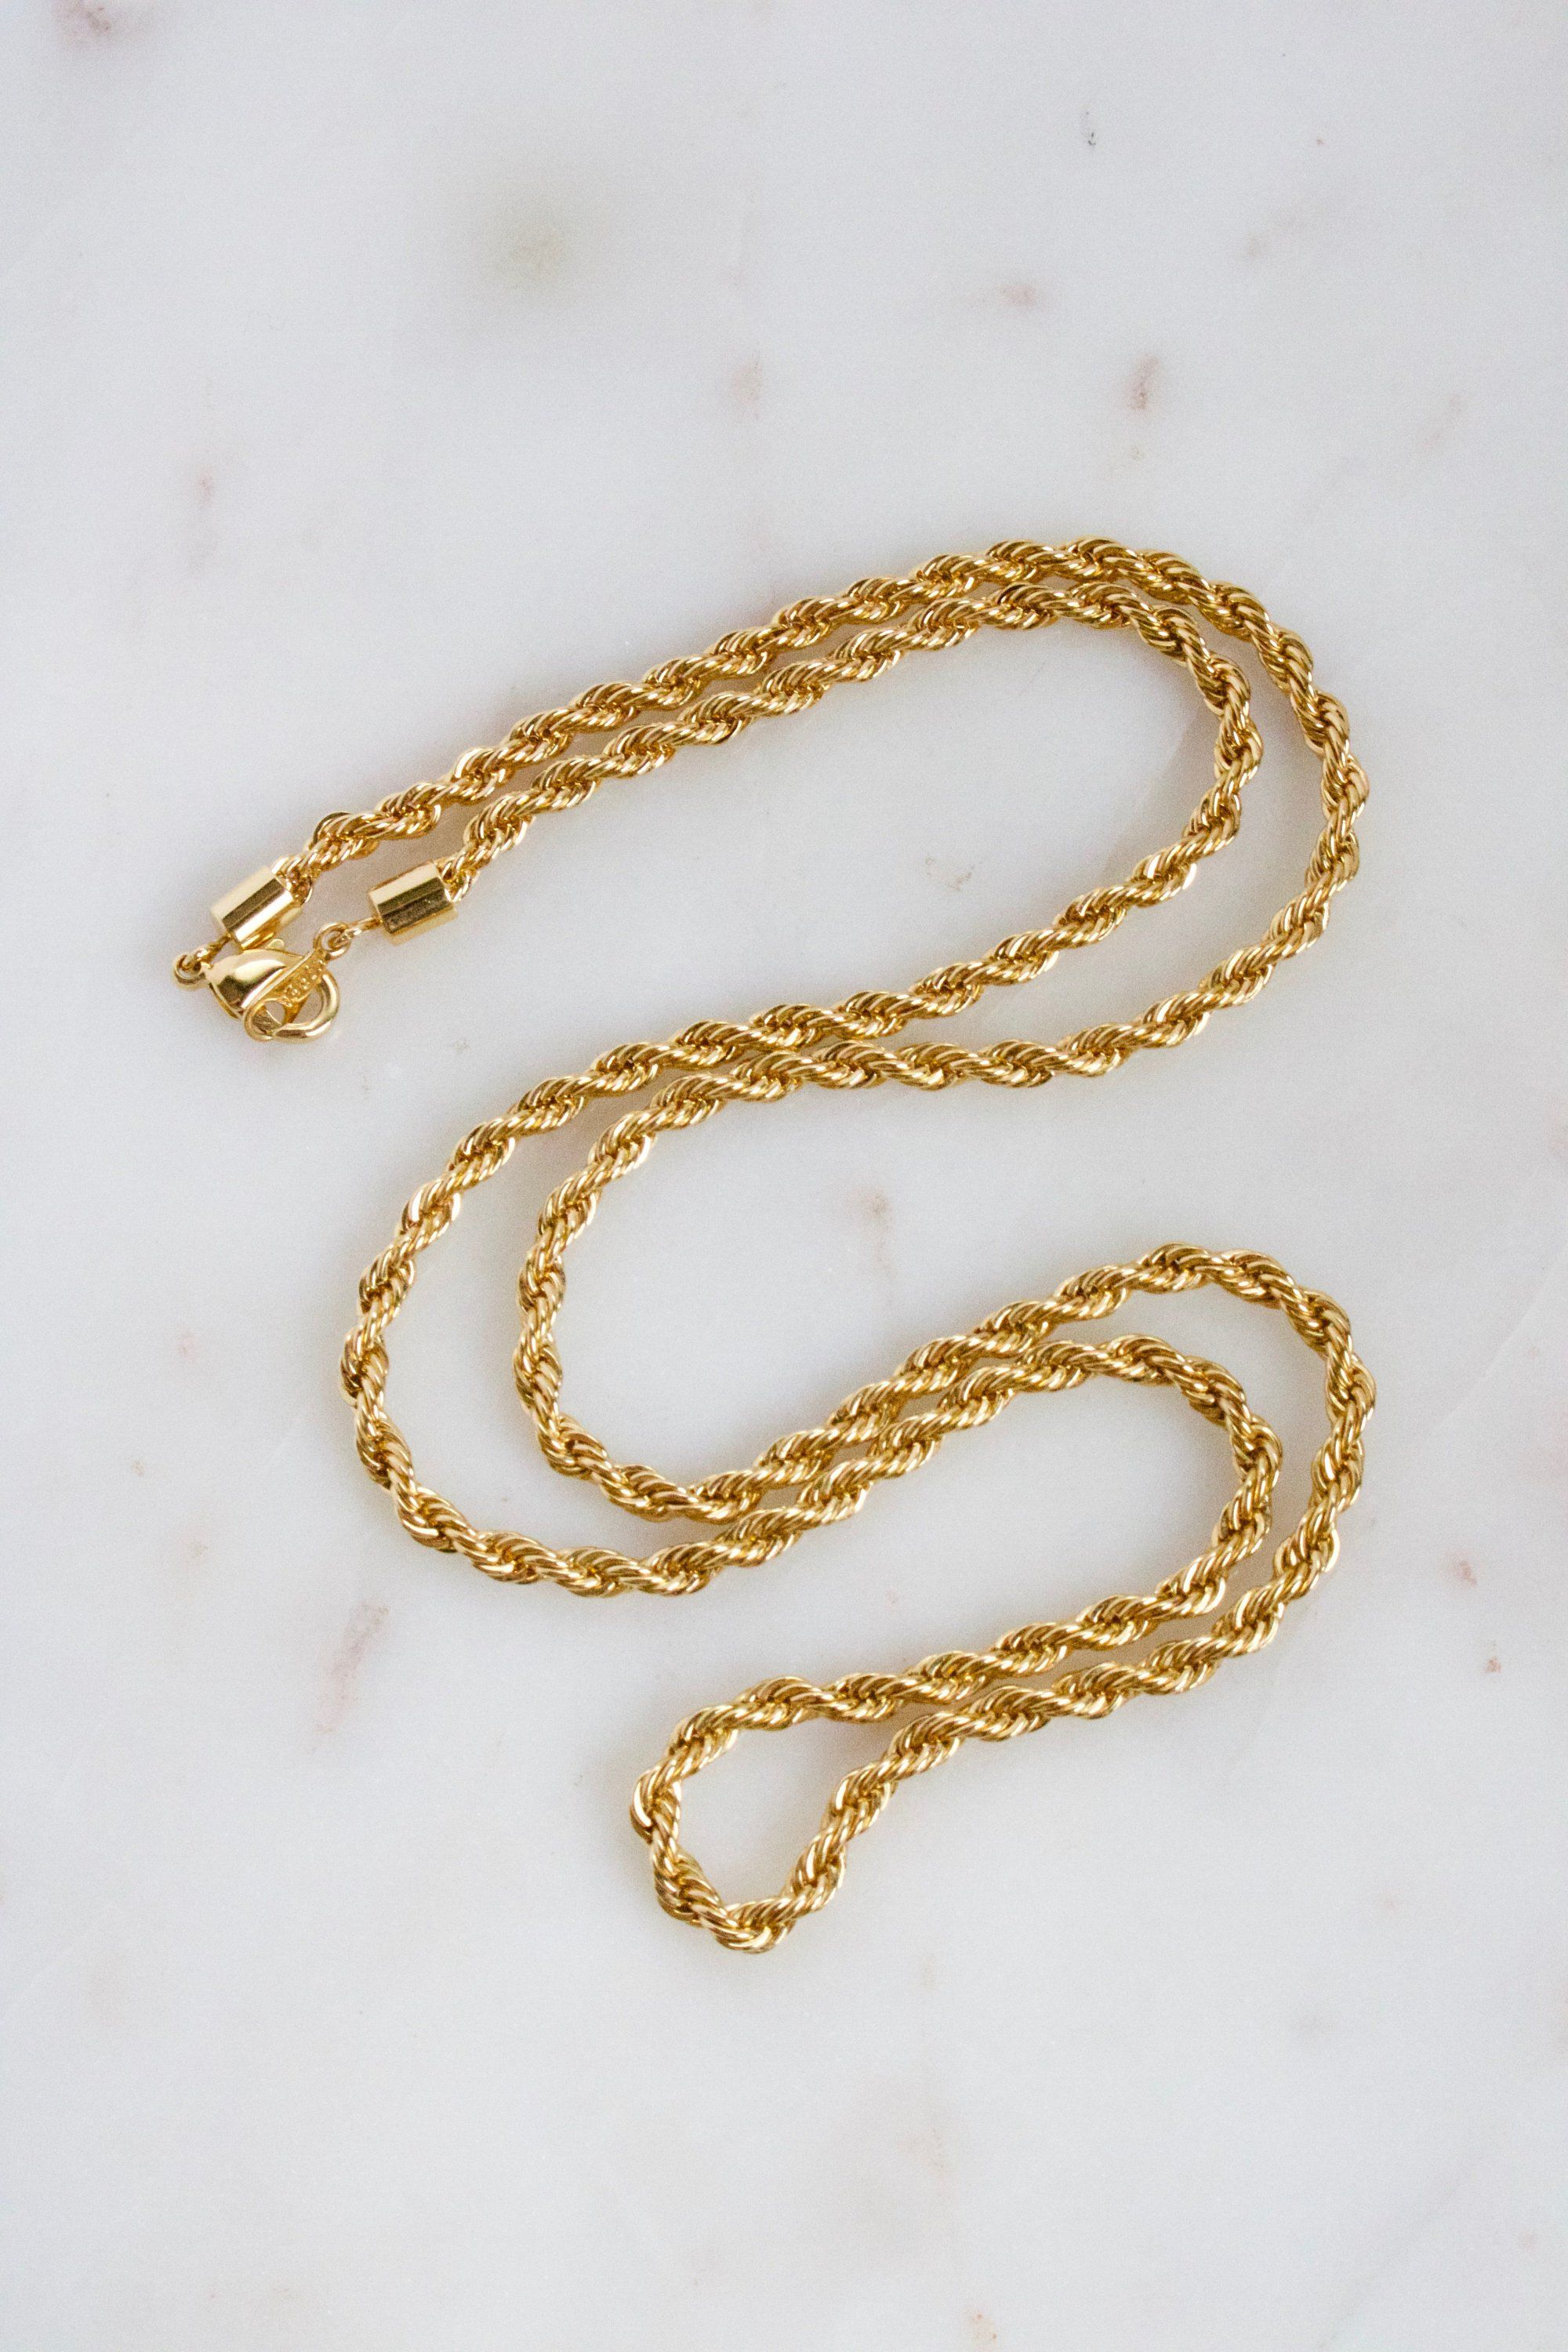 Vintage Korea Twisted Gold Chain Necklace Gold Chain Design Gold Jewelry Fashion Bridal Gold Jewellery